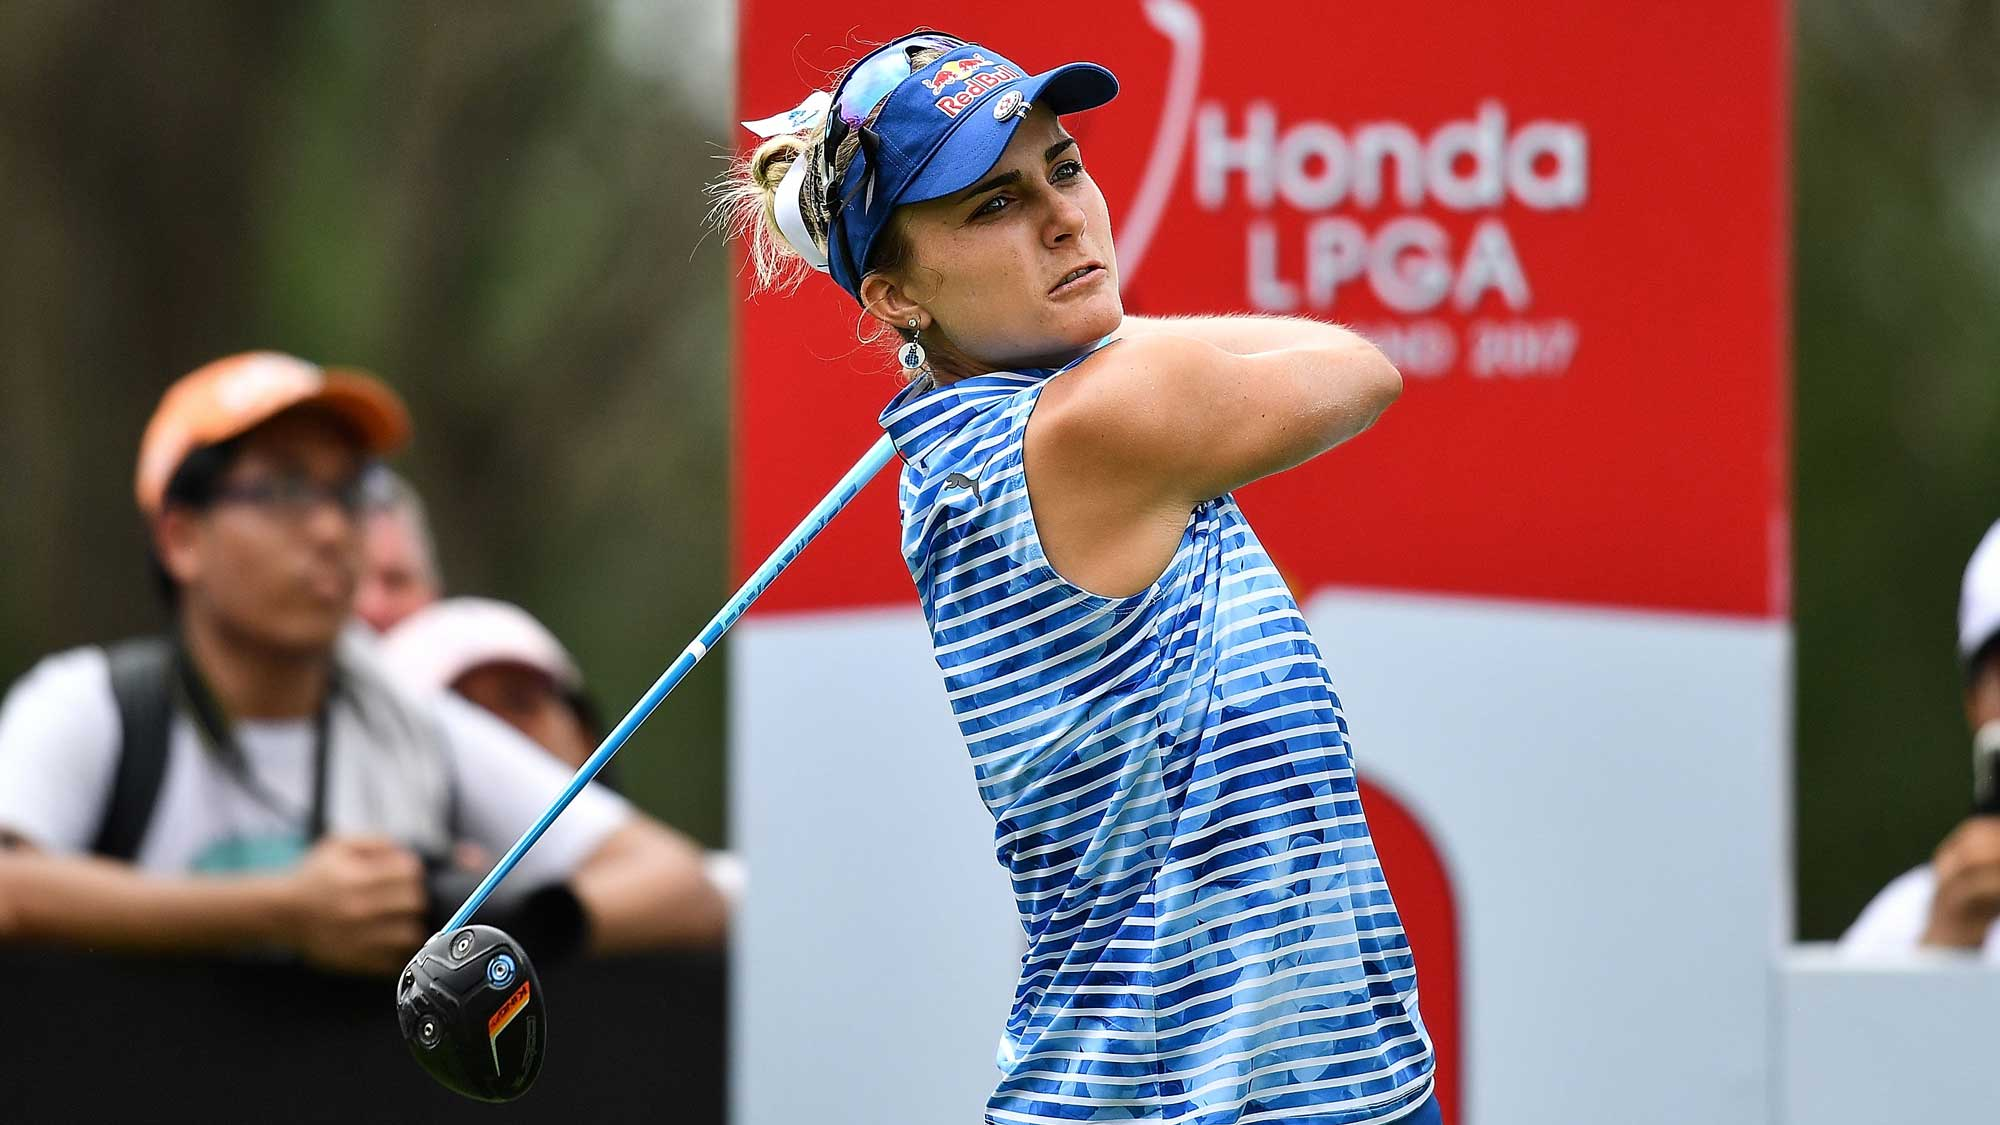 Lexi Thompson of United States tee off at 9th hole during the final round of Honda LPGA Thailand